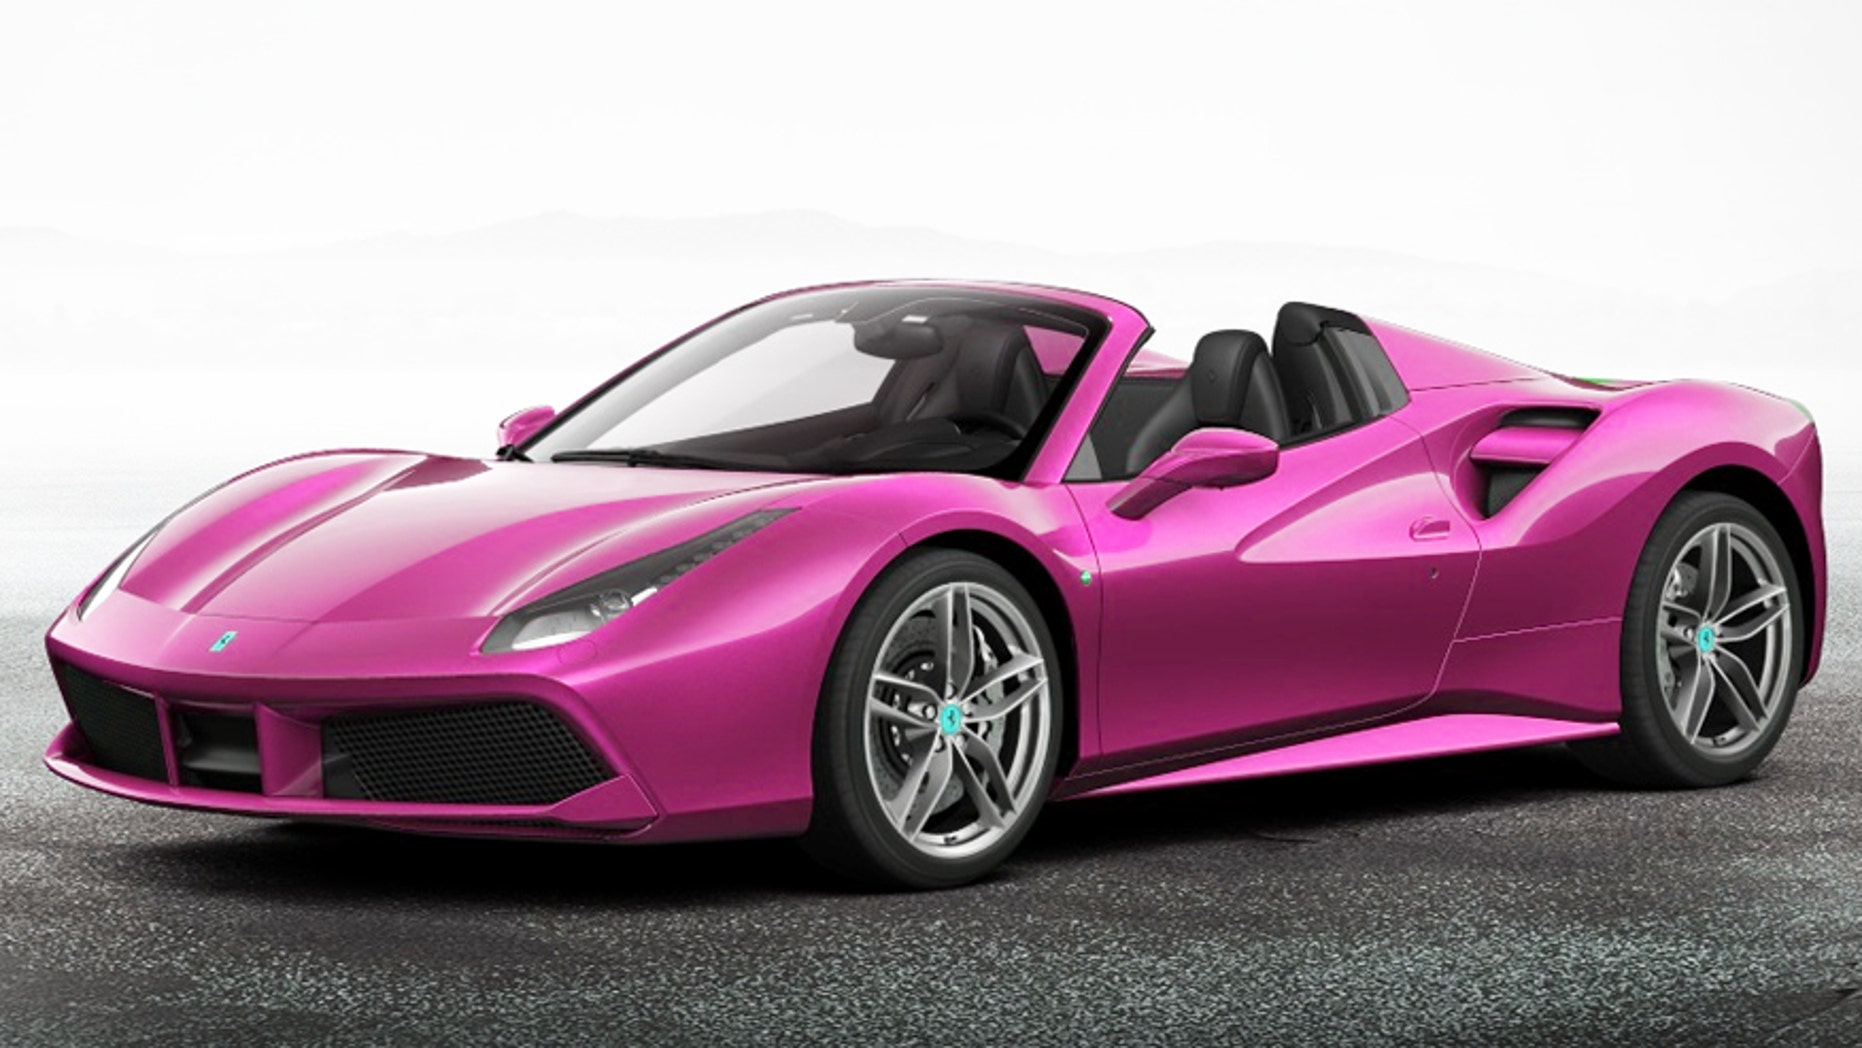 Ferrari is definitely not in the pink, bans color from its cars ...